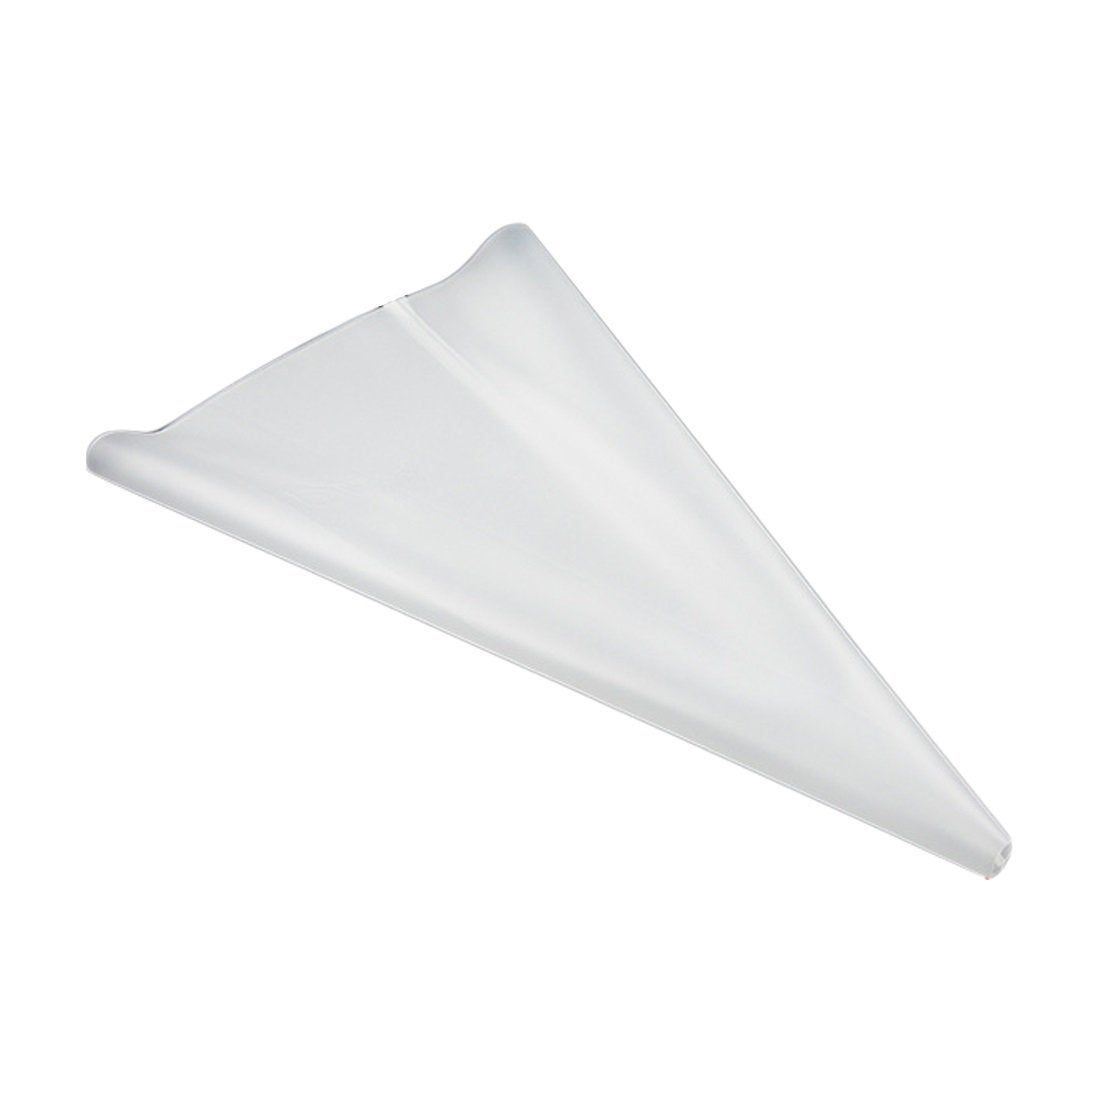 Silicone Piping Bag Multiple Sizes Reusable Bag Pastry Bag Piping Piping Bag Reusable Bags